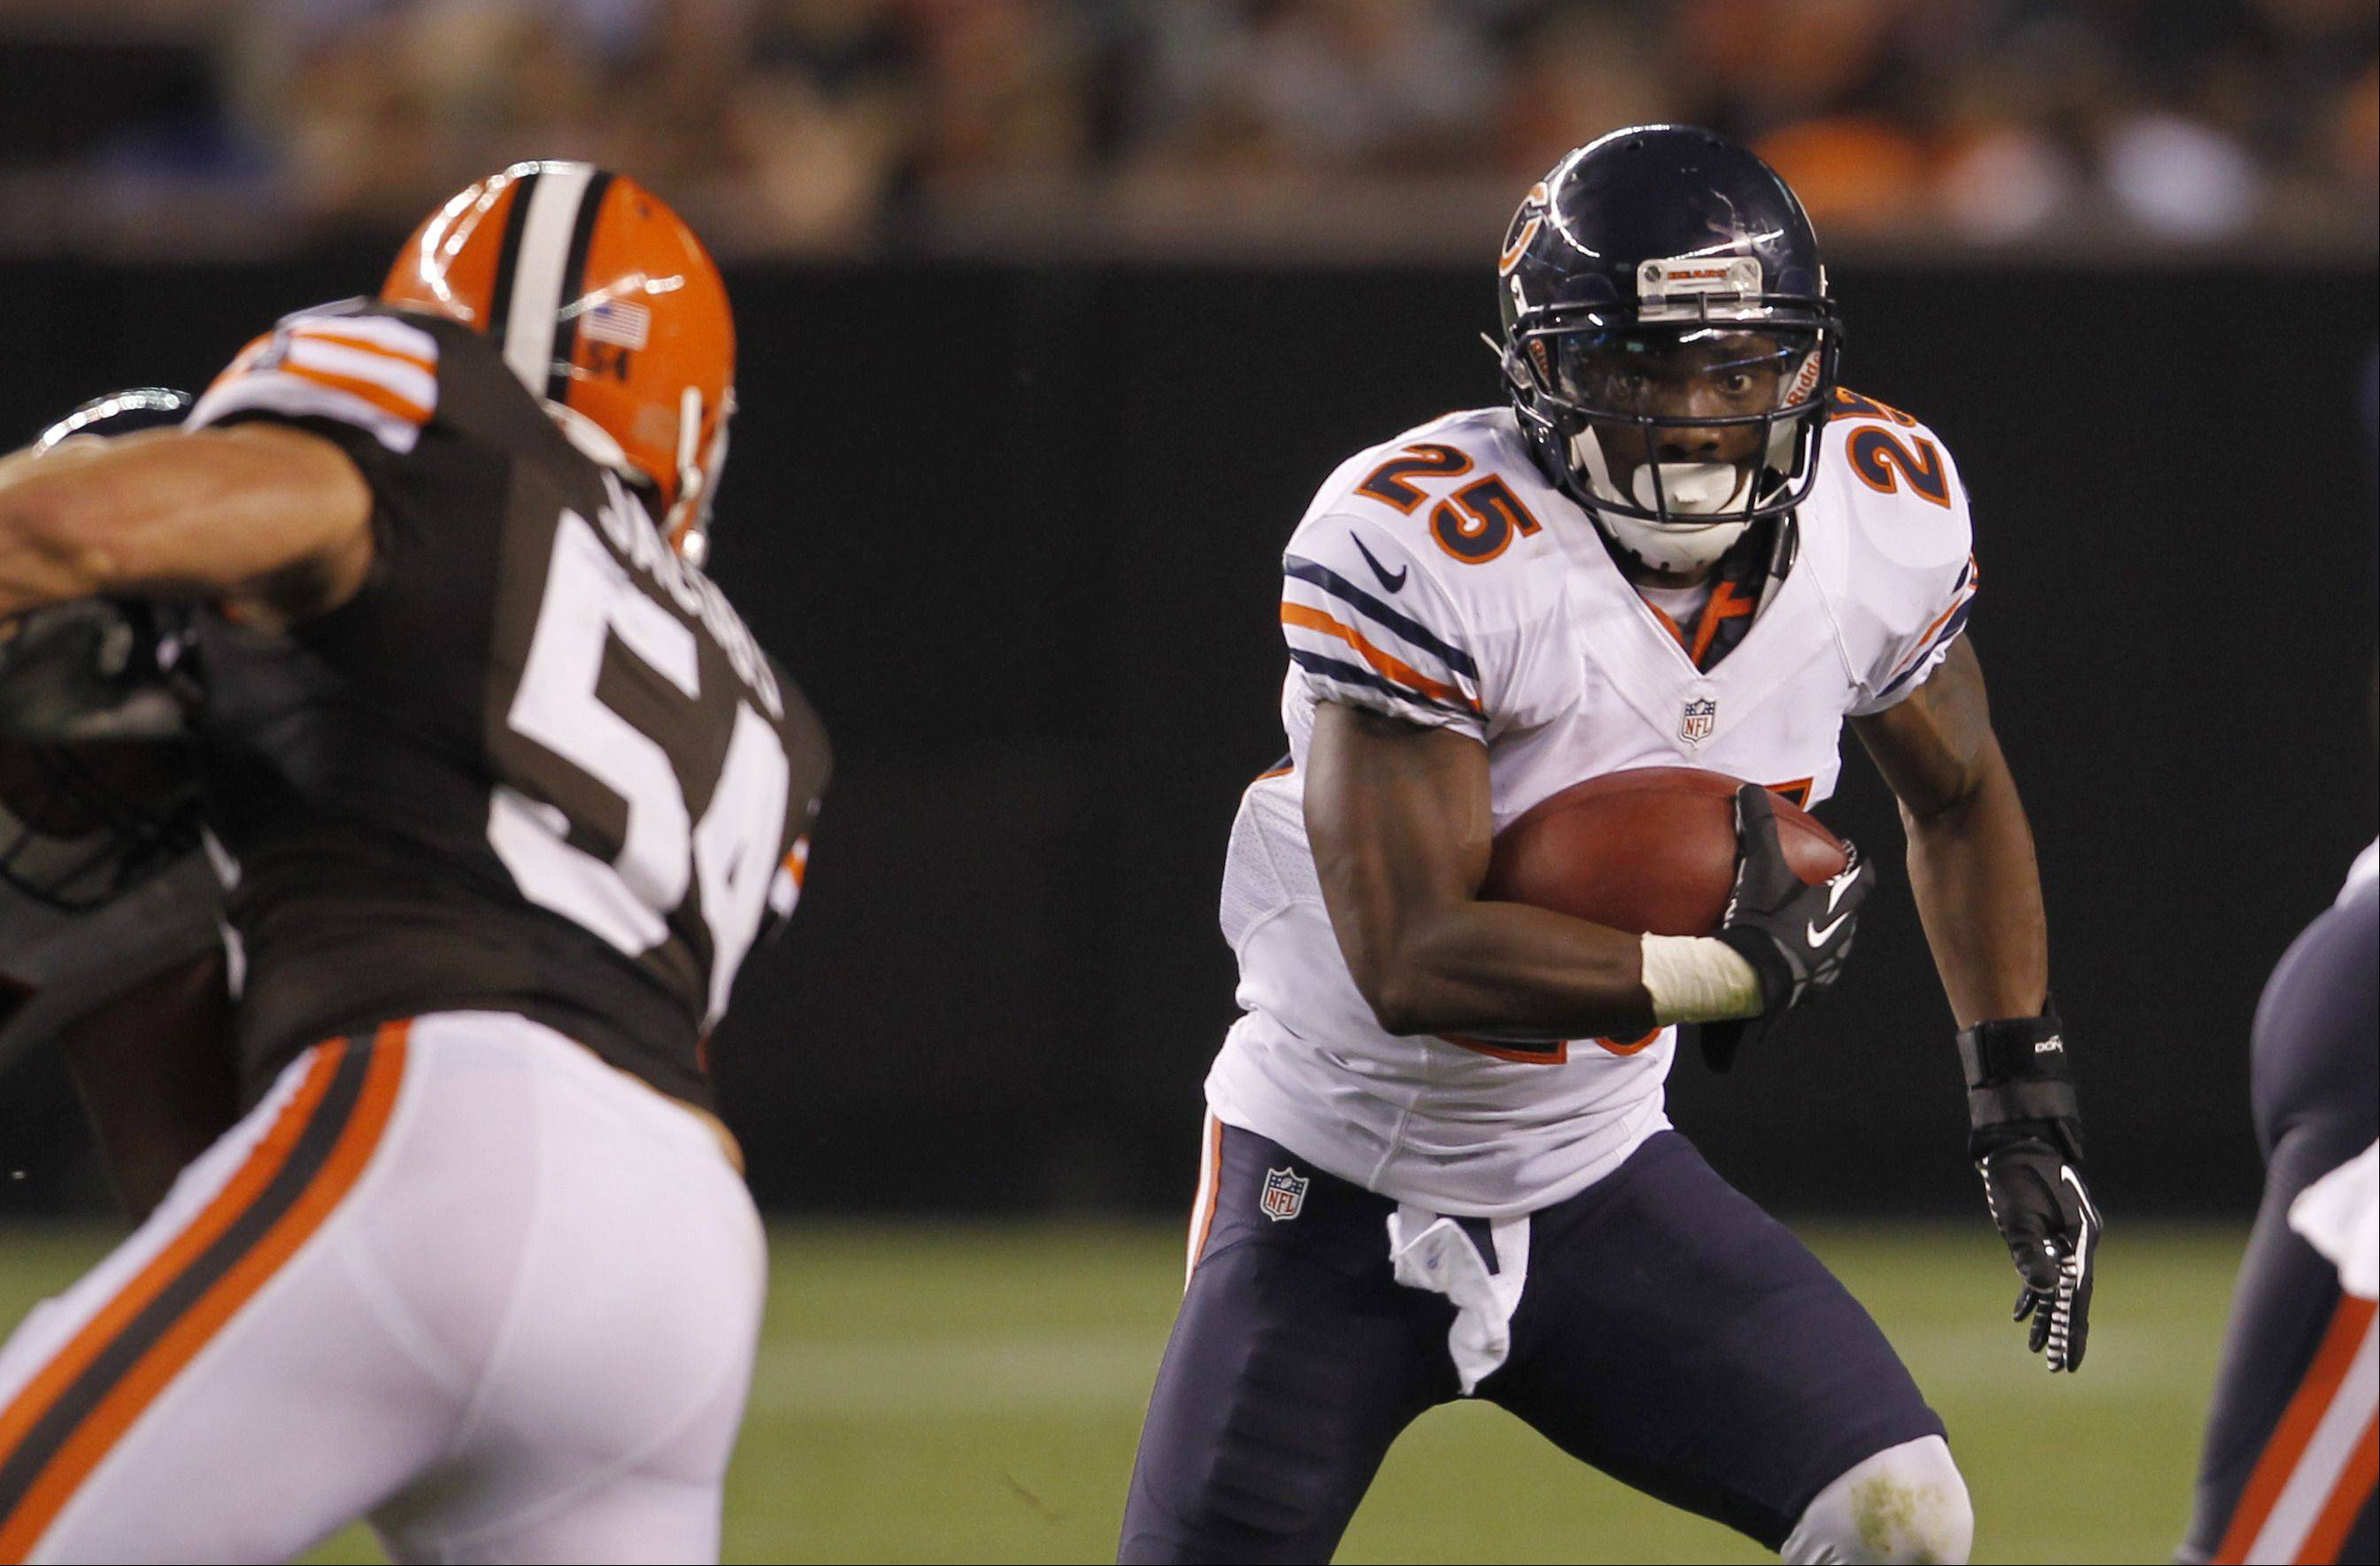 Chicago Bears running back Armando Allen runs against the Cleveland Browns in the third quarter of a preseason NFL football game, Thursday, Aug. 30, 2012, in Cleveland.